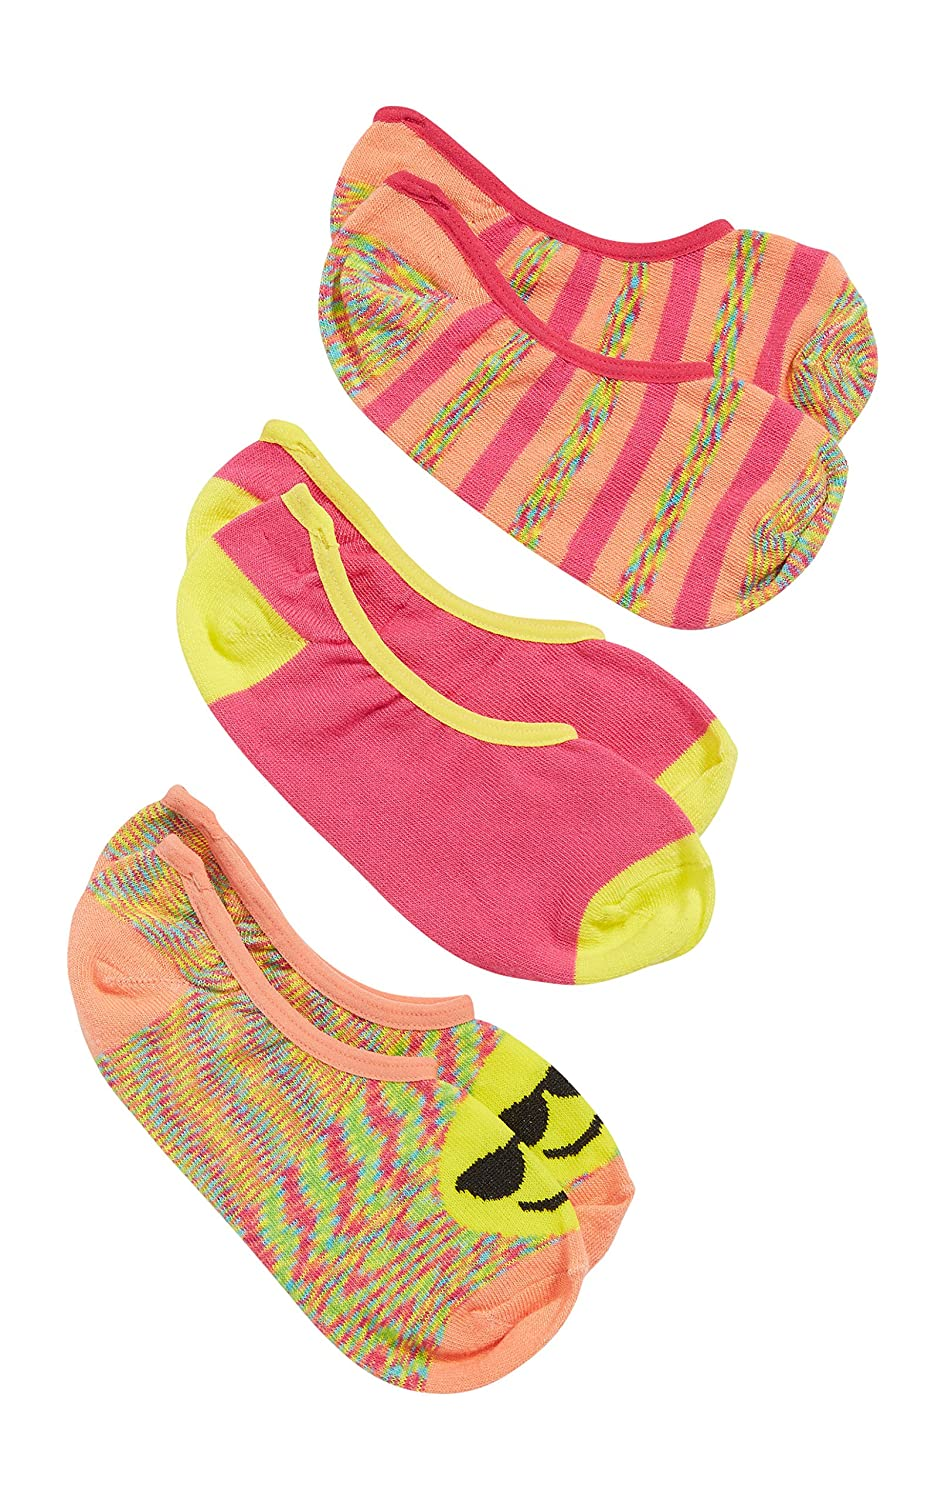 Maurices Women's Colorful No-Show Socks With Emojis - 3 Pack One Size Multi